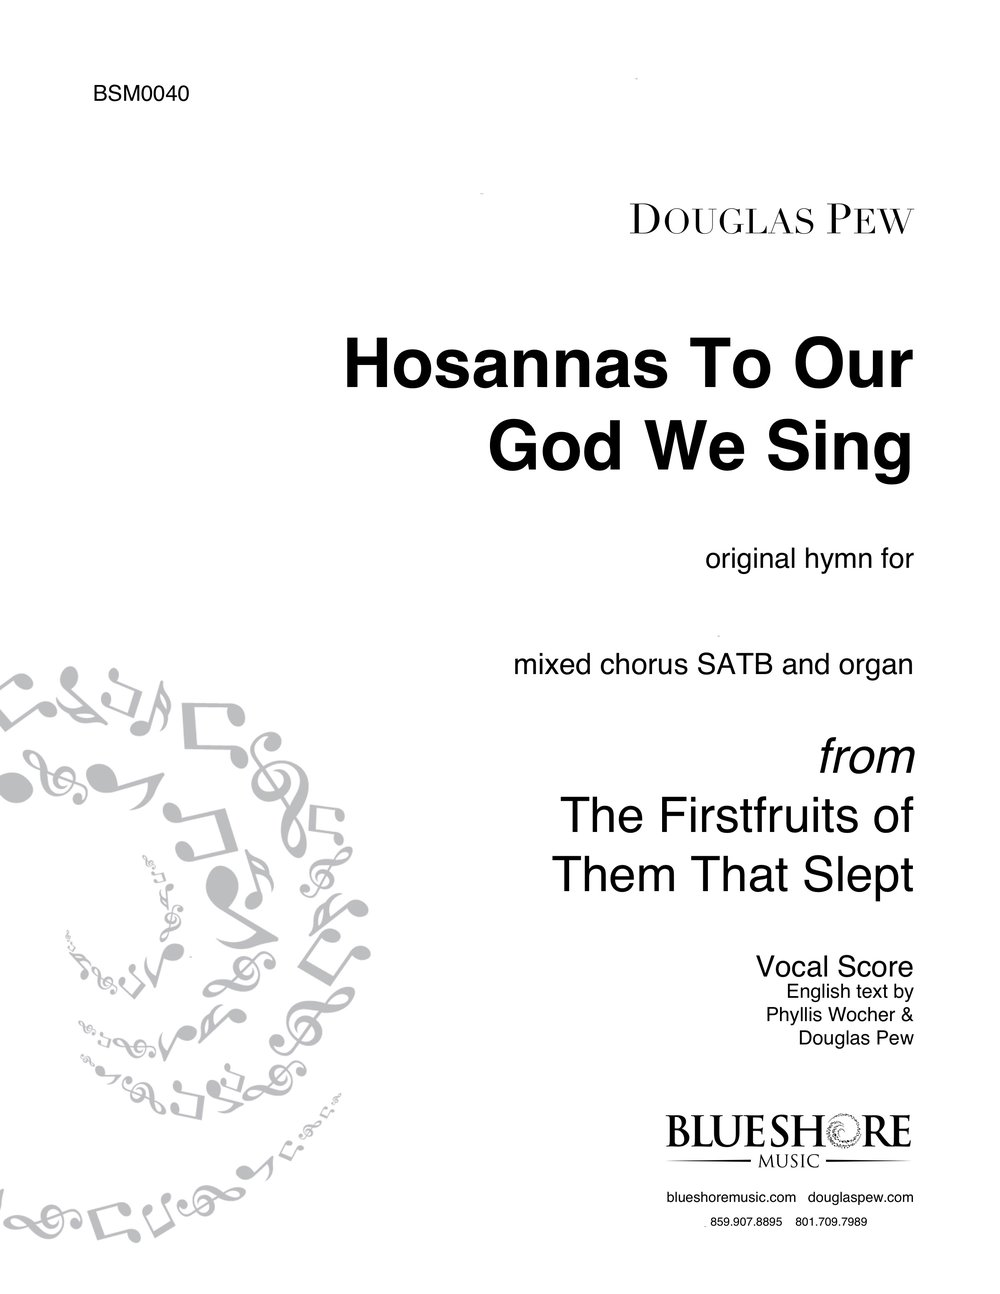 Hosannas To Our God We Sing